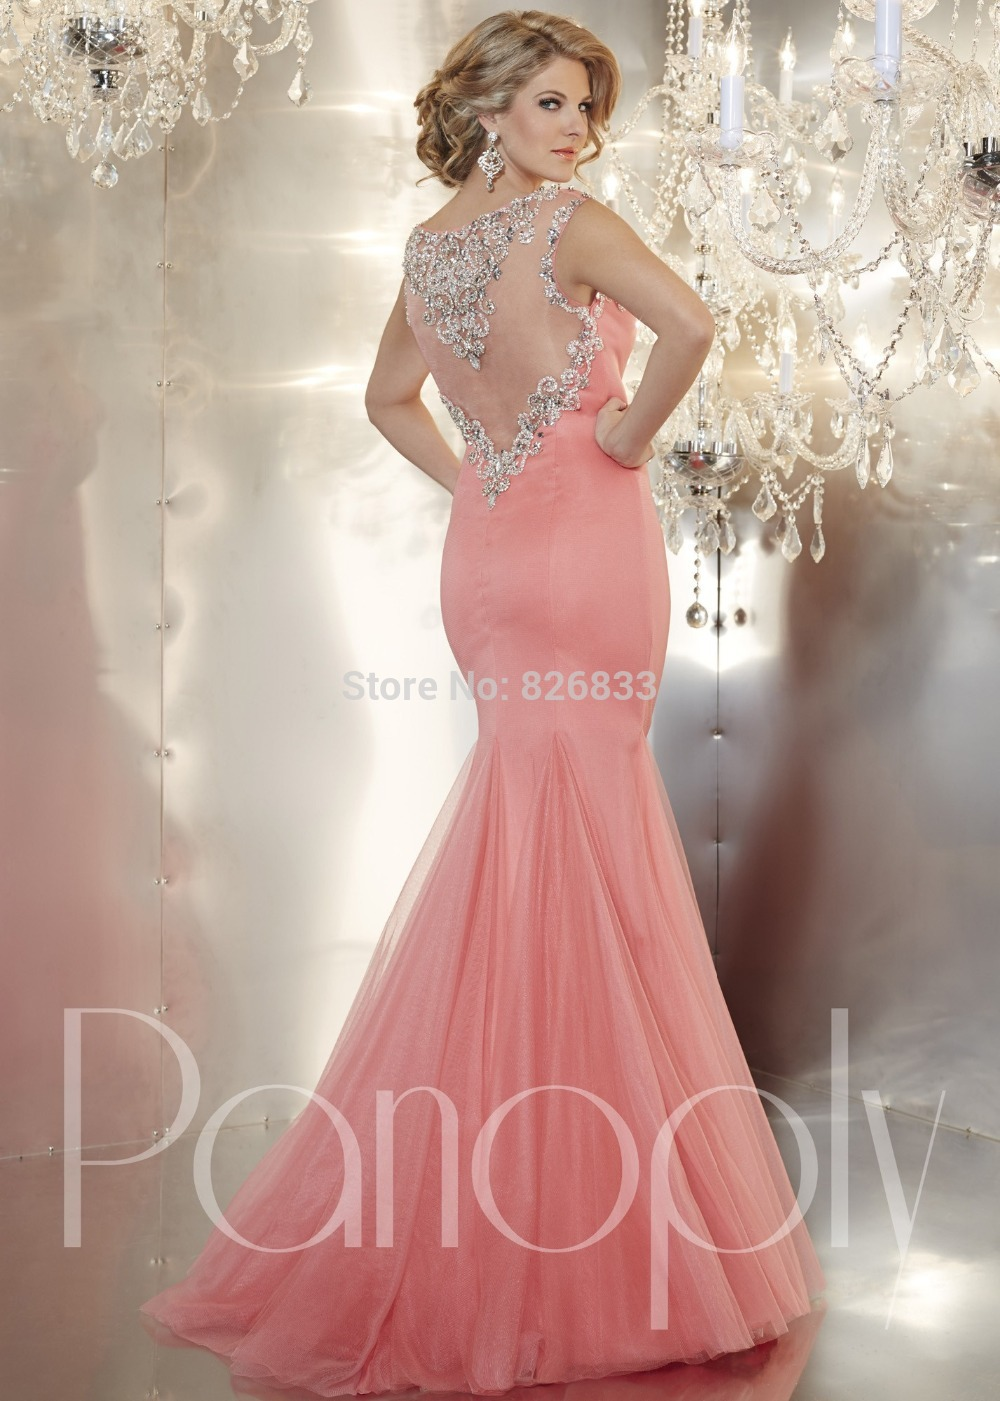 Light Blue Pink Mermaid Prom Dresses Sparkly Beaded Evening Gowns ...